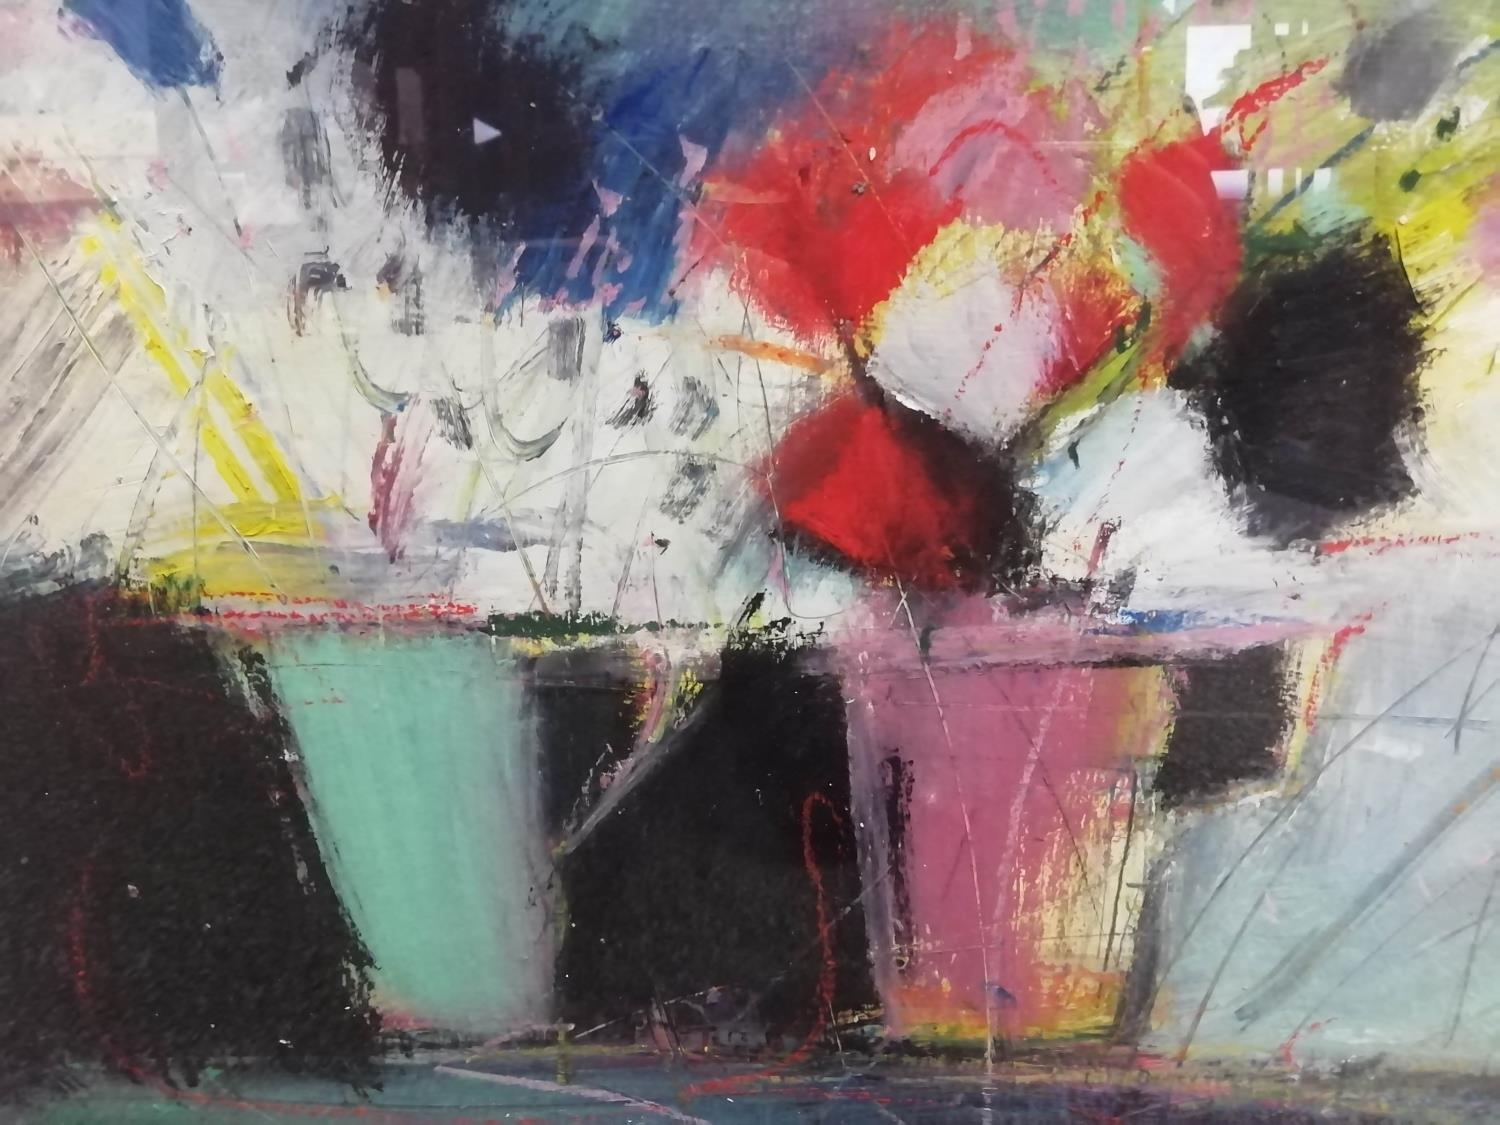 JUSTINE LOIS THORPE (Contemporary British) 'Still Life with Cups of Flowers', 2014, pastel, - Image 8 of 8